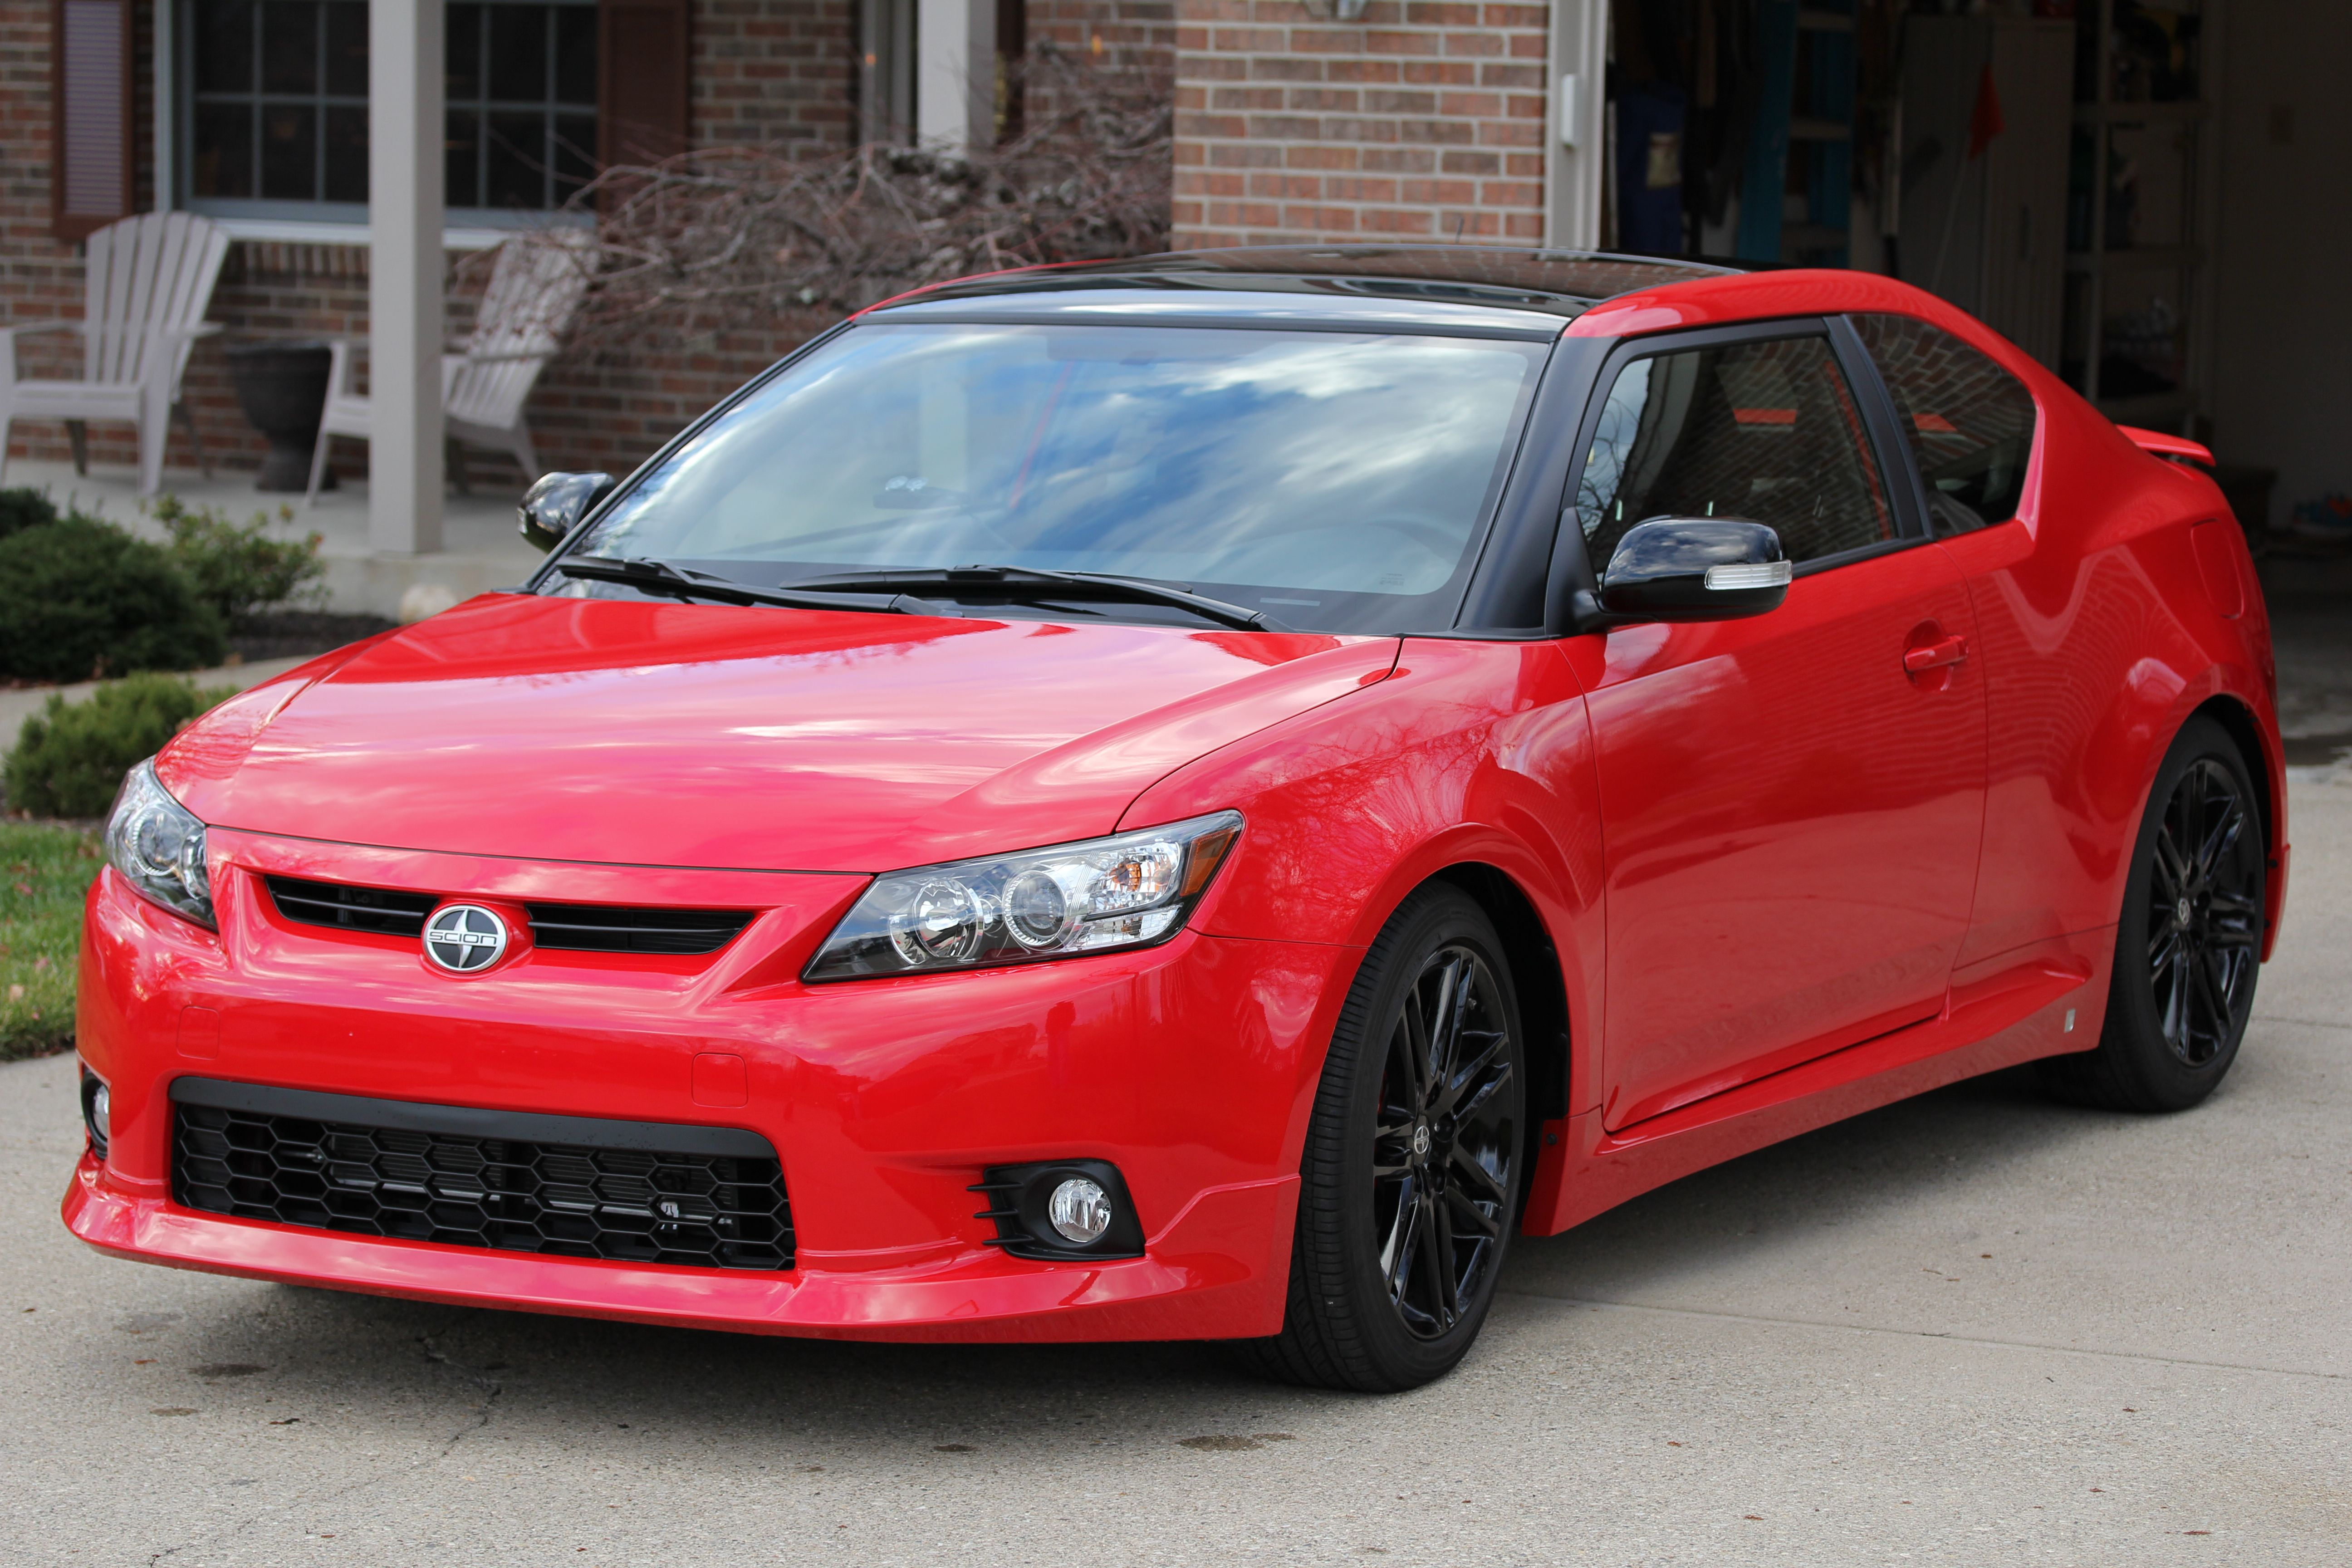 This Is A Scion Tc Release Series 8 0 Model Painted Exclusively In Absolutely Red Combined With Contrasting Black On The Side View Mirrors As Well